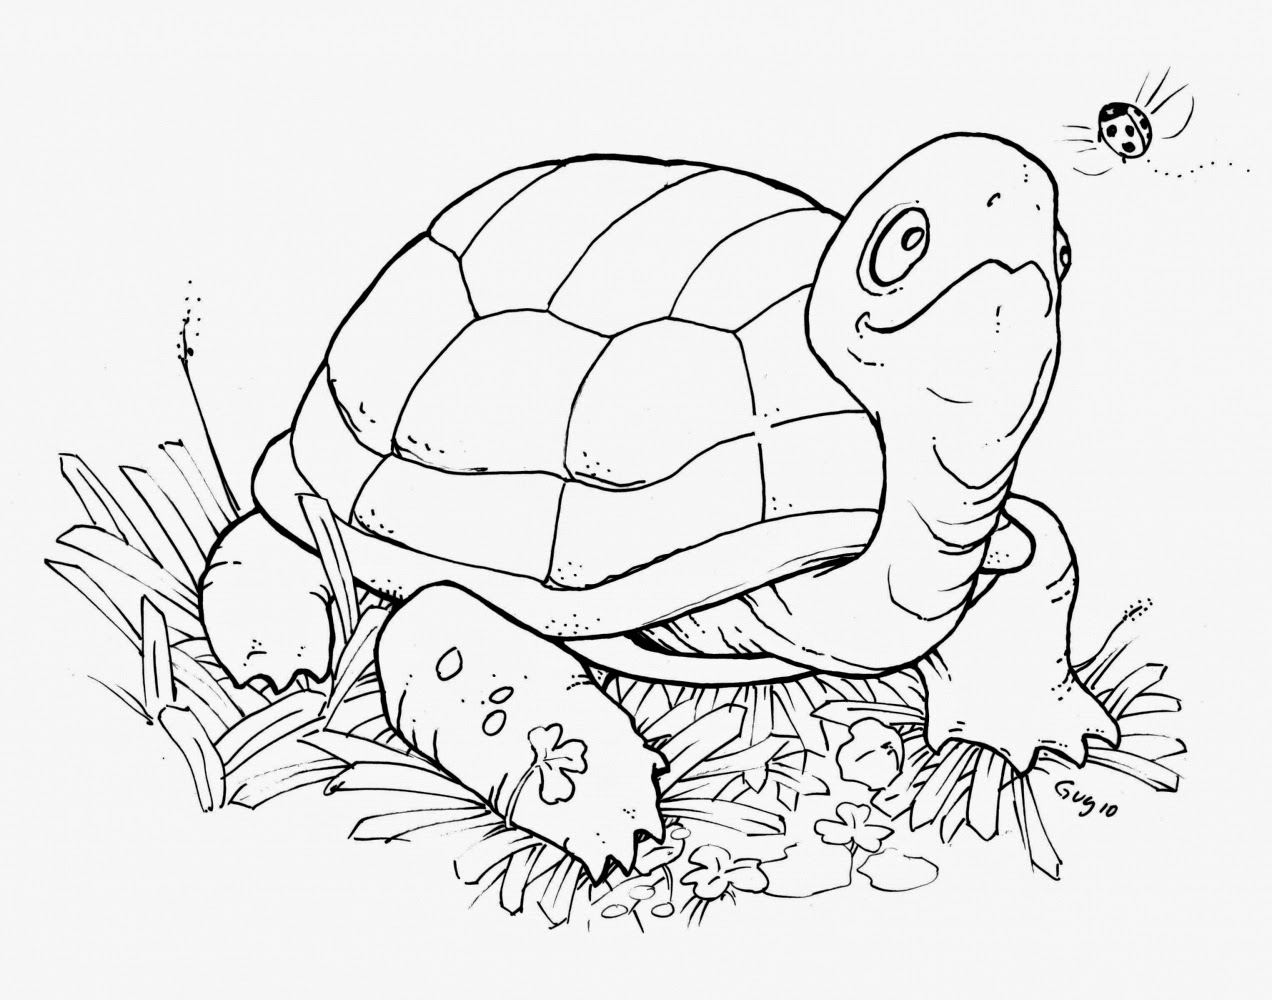 turtle coloring book page turtles coloring pages download and print turtles book coloring page turtle